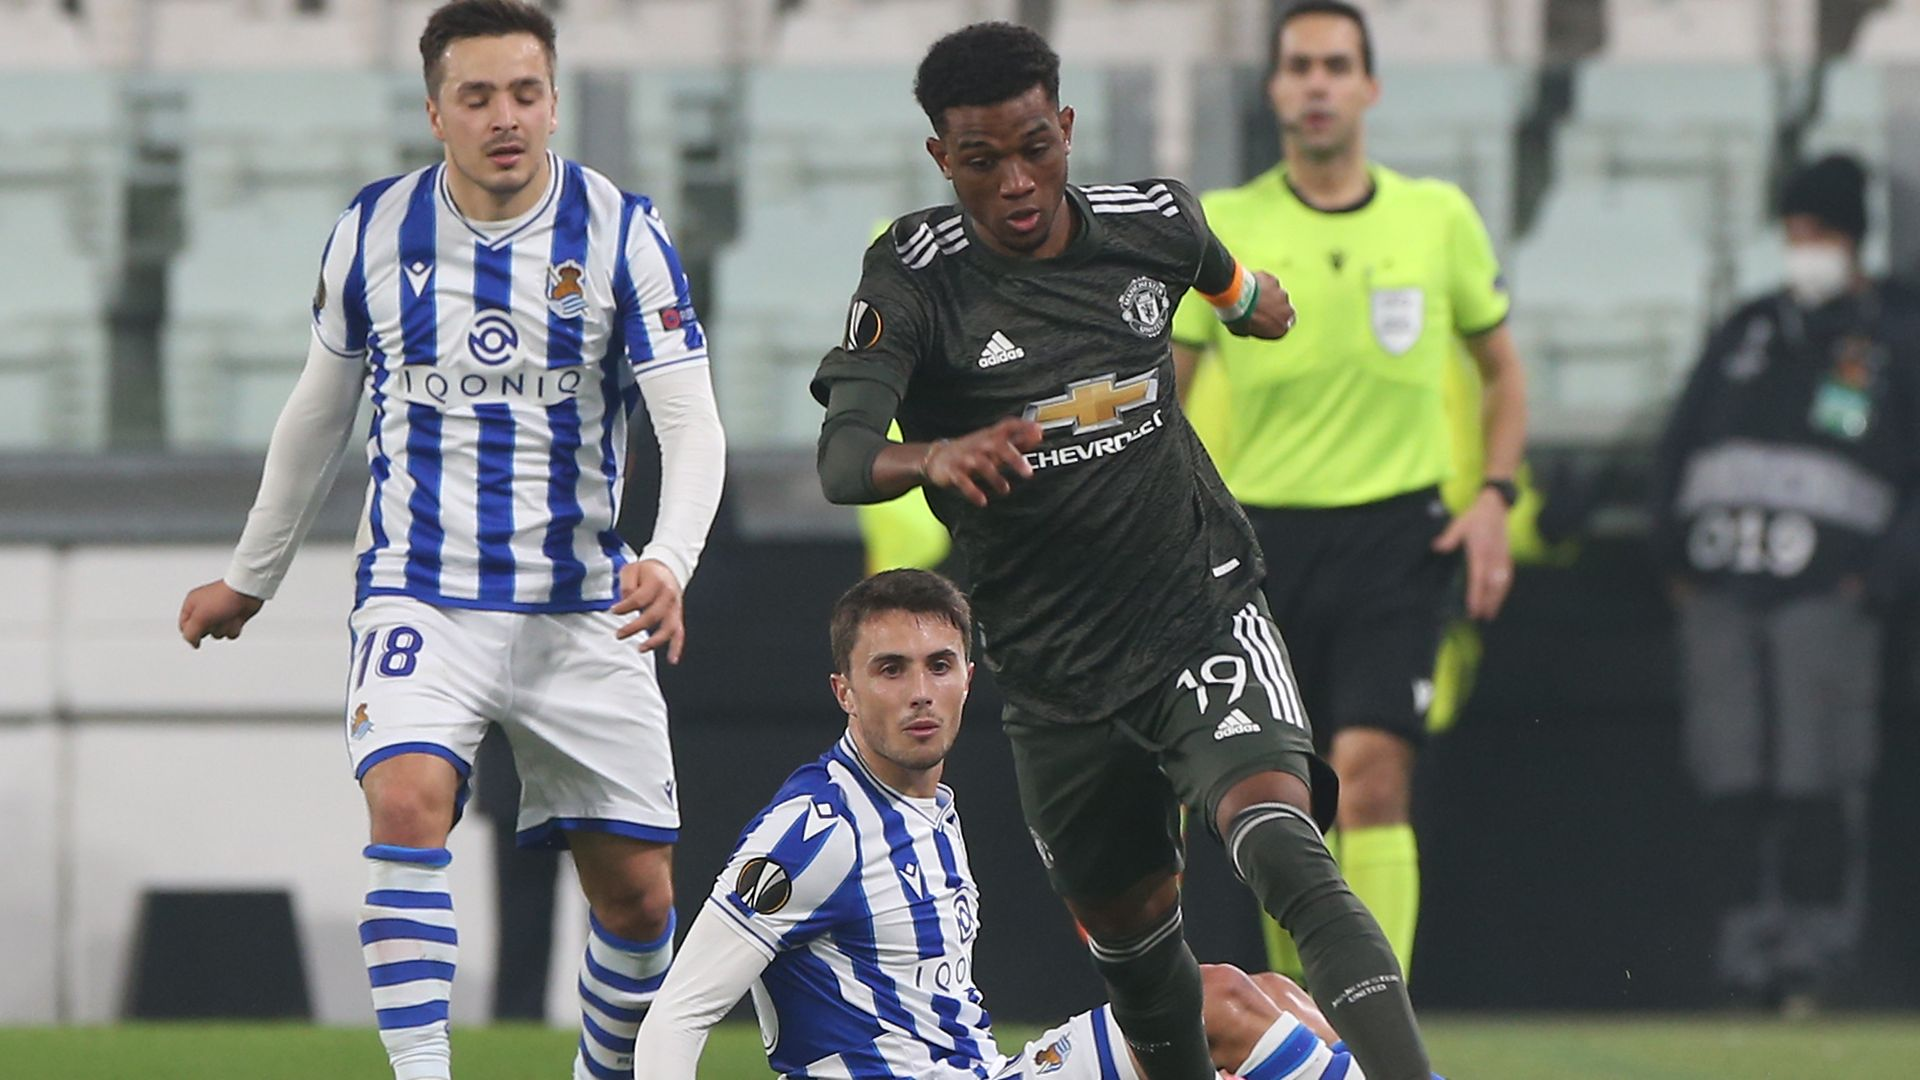 Amad Diallo, of Manchester United, evades two Real Sociedad players during the sides' recent Europa League clash. The English team won 4-0 - Credit: Manchester United via Getty Imag